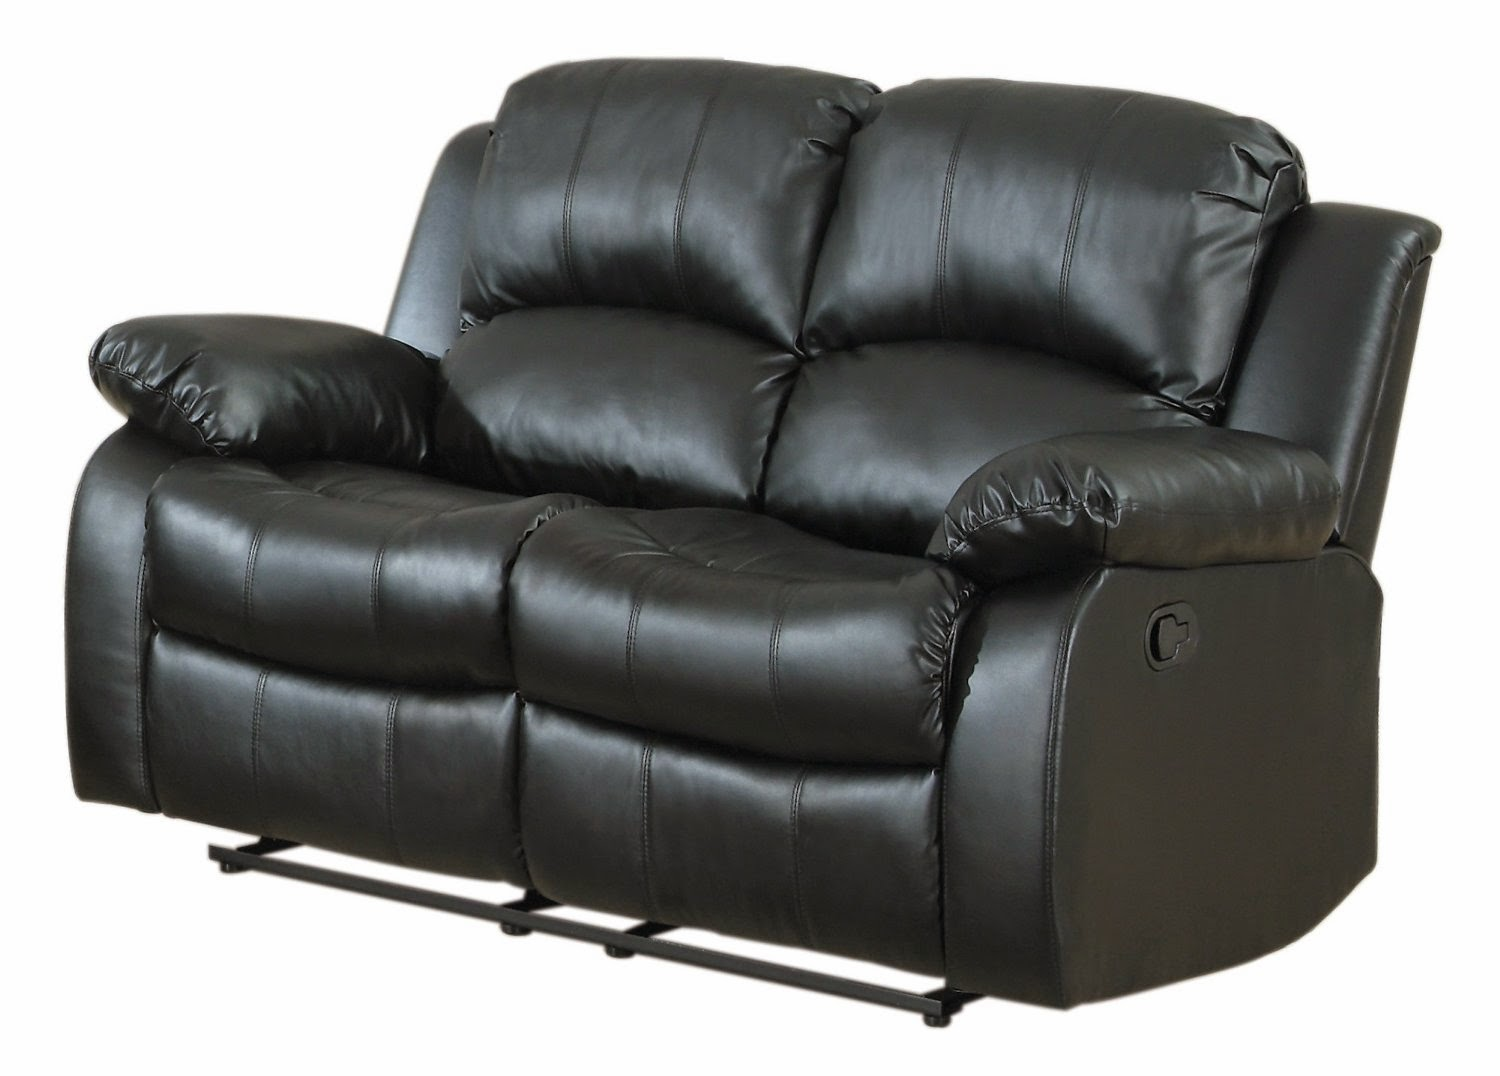 two seater sofa recliner build online reclining sofas for sale cheap uk